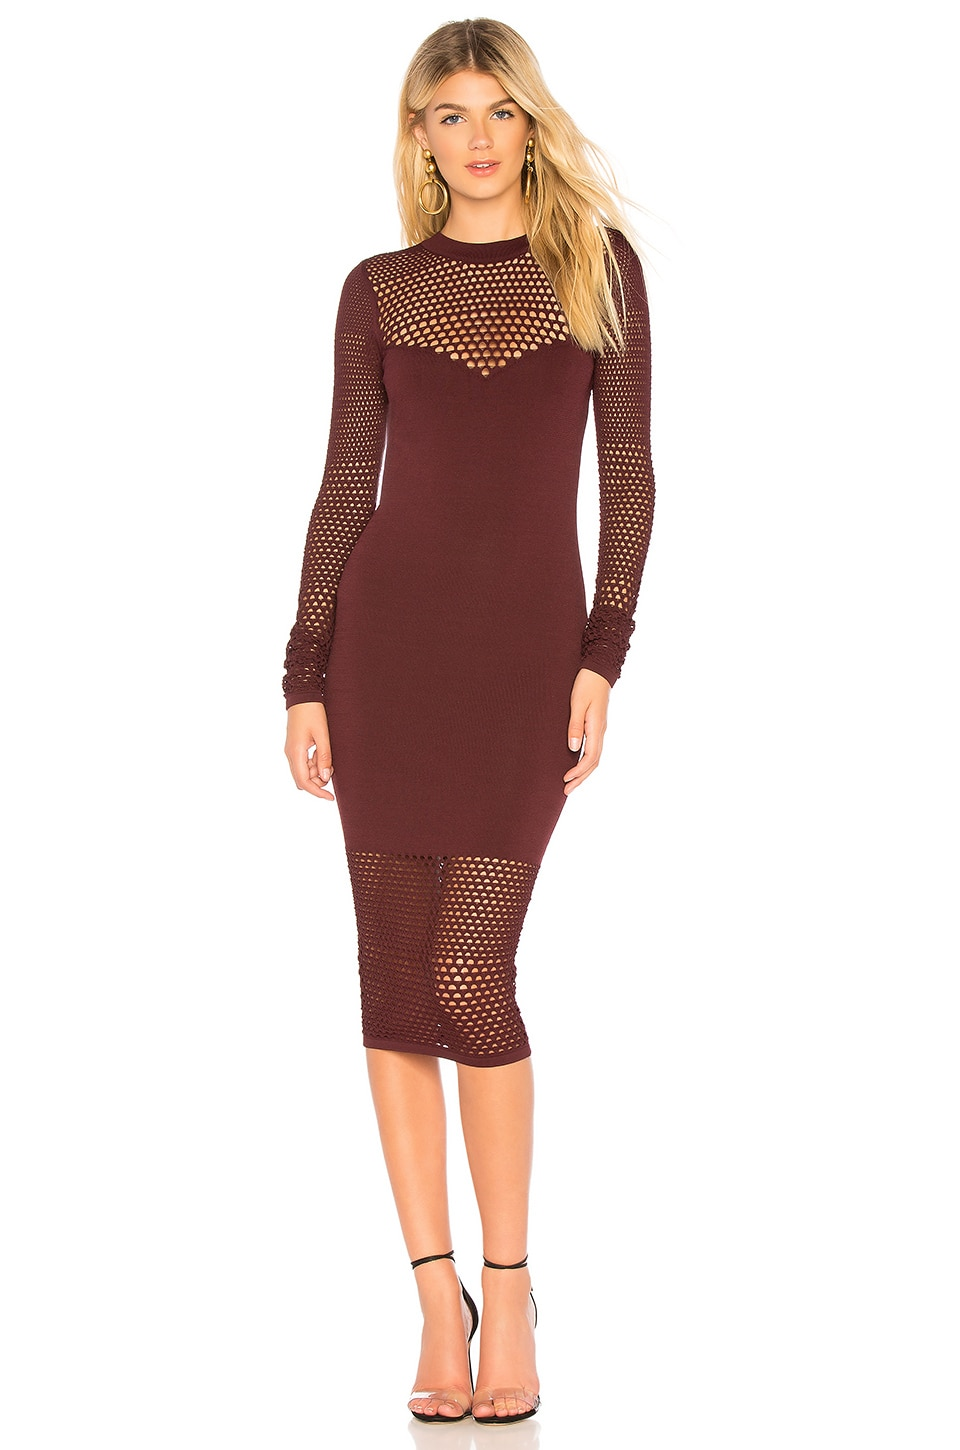 Decoy Sweater Dress